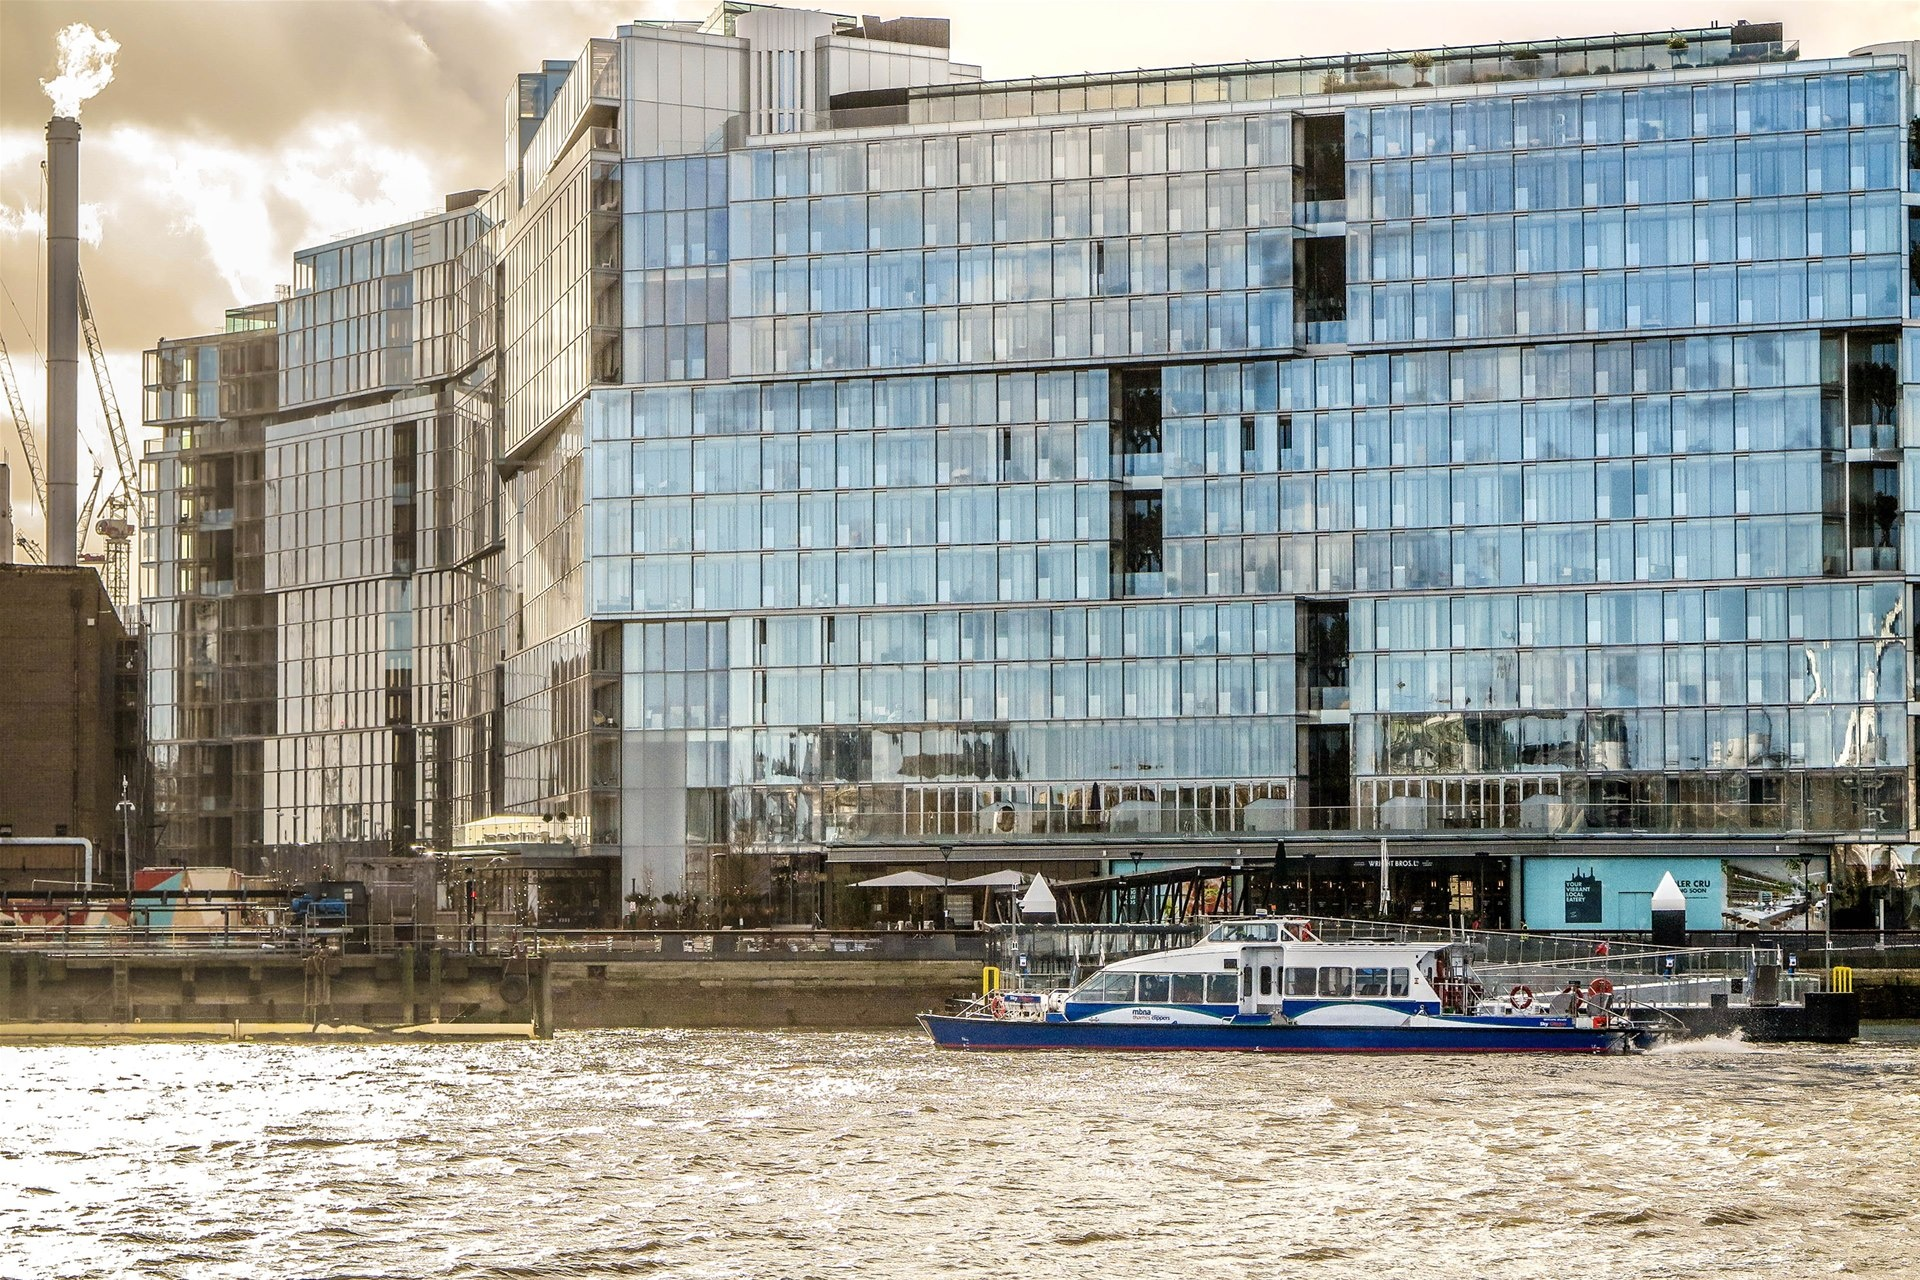 Battersea becomes the latest addition to the advanced river transport network of London